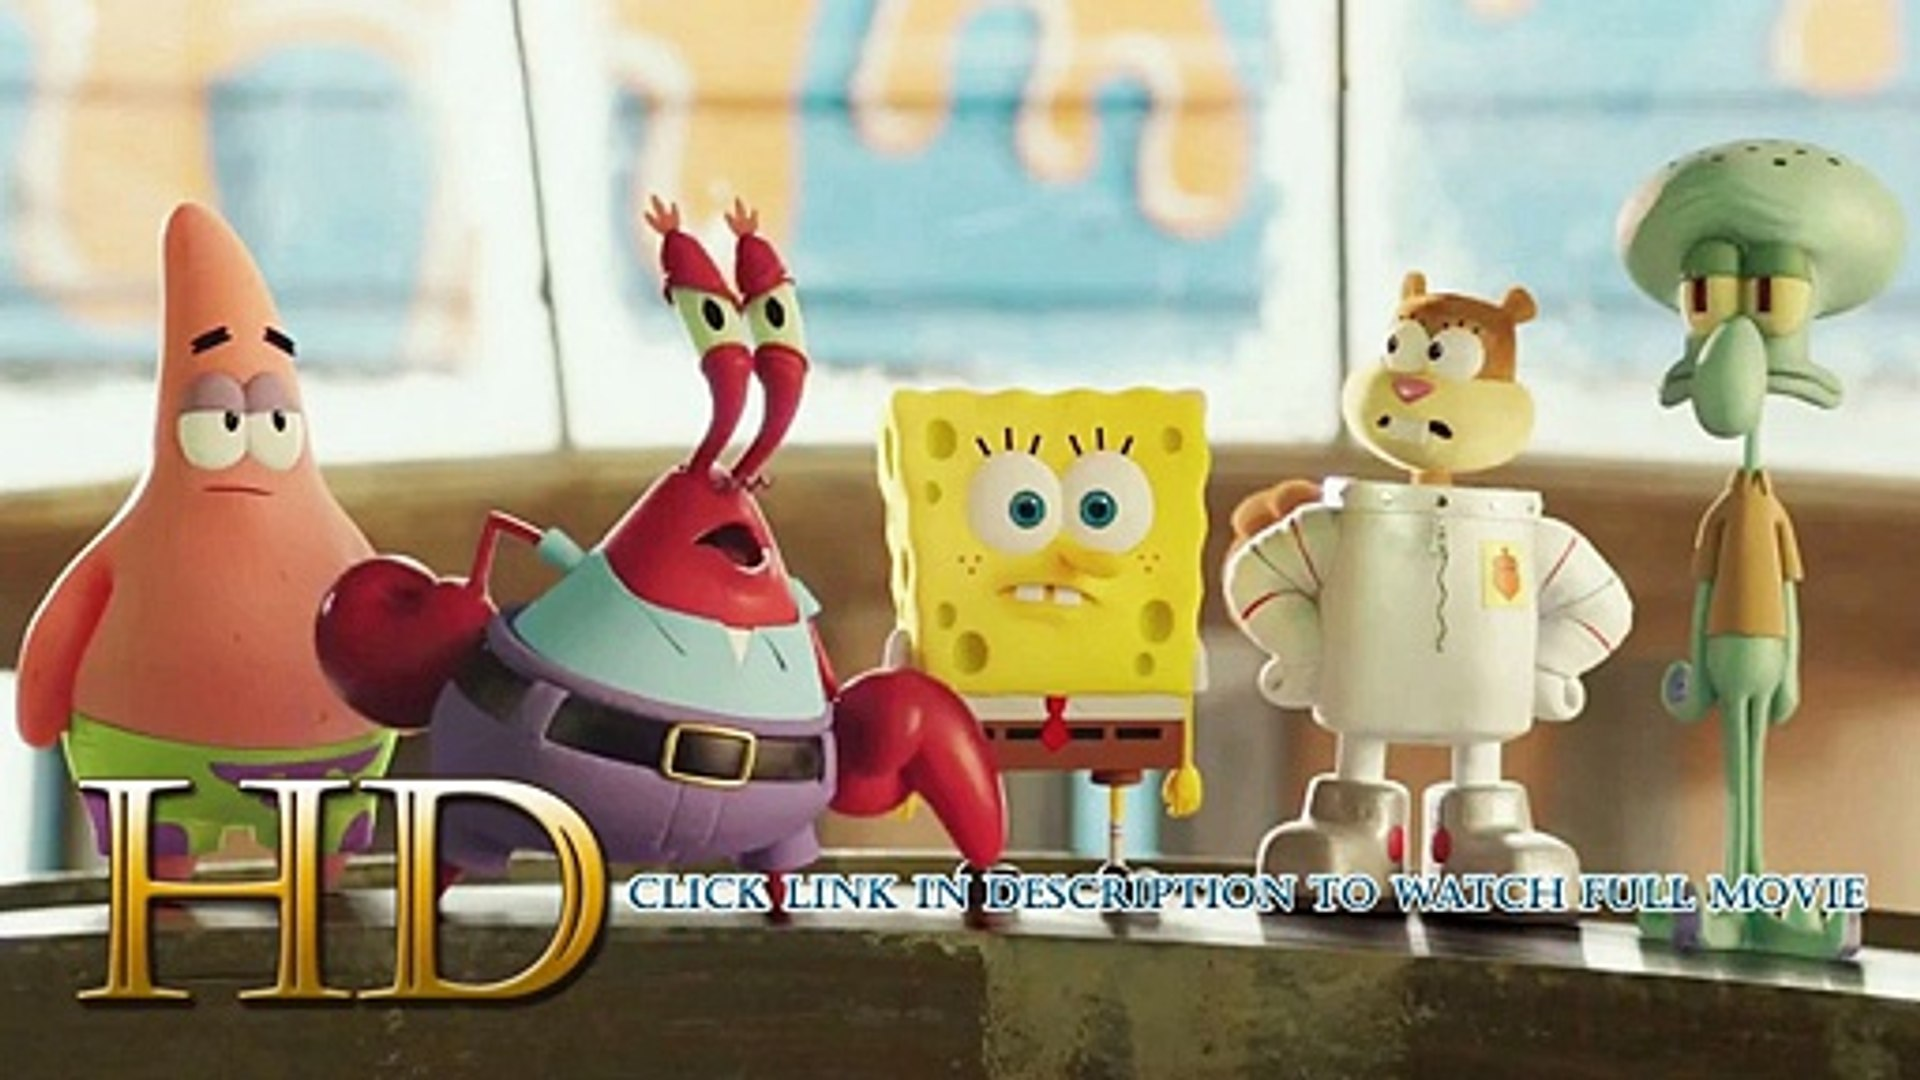 atch The SpongeBob Movie: Sponge Out of Water Full Movie 2015, #Watch The SpongeBob Movie: Sponge Ou